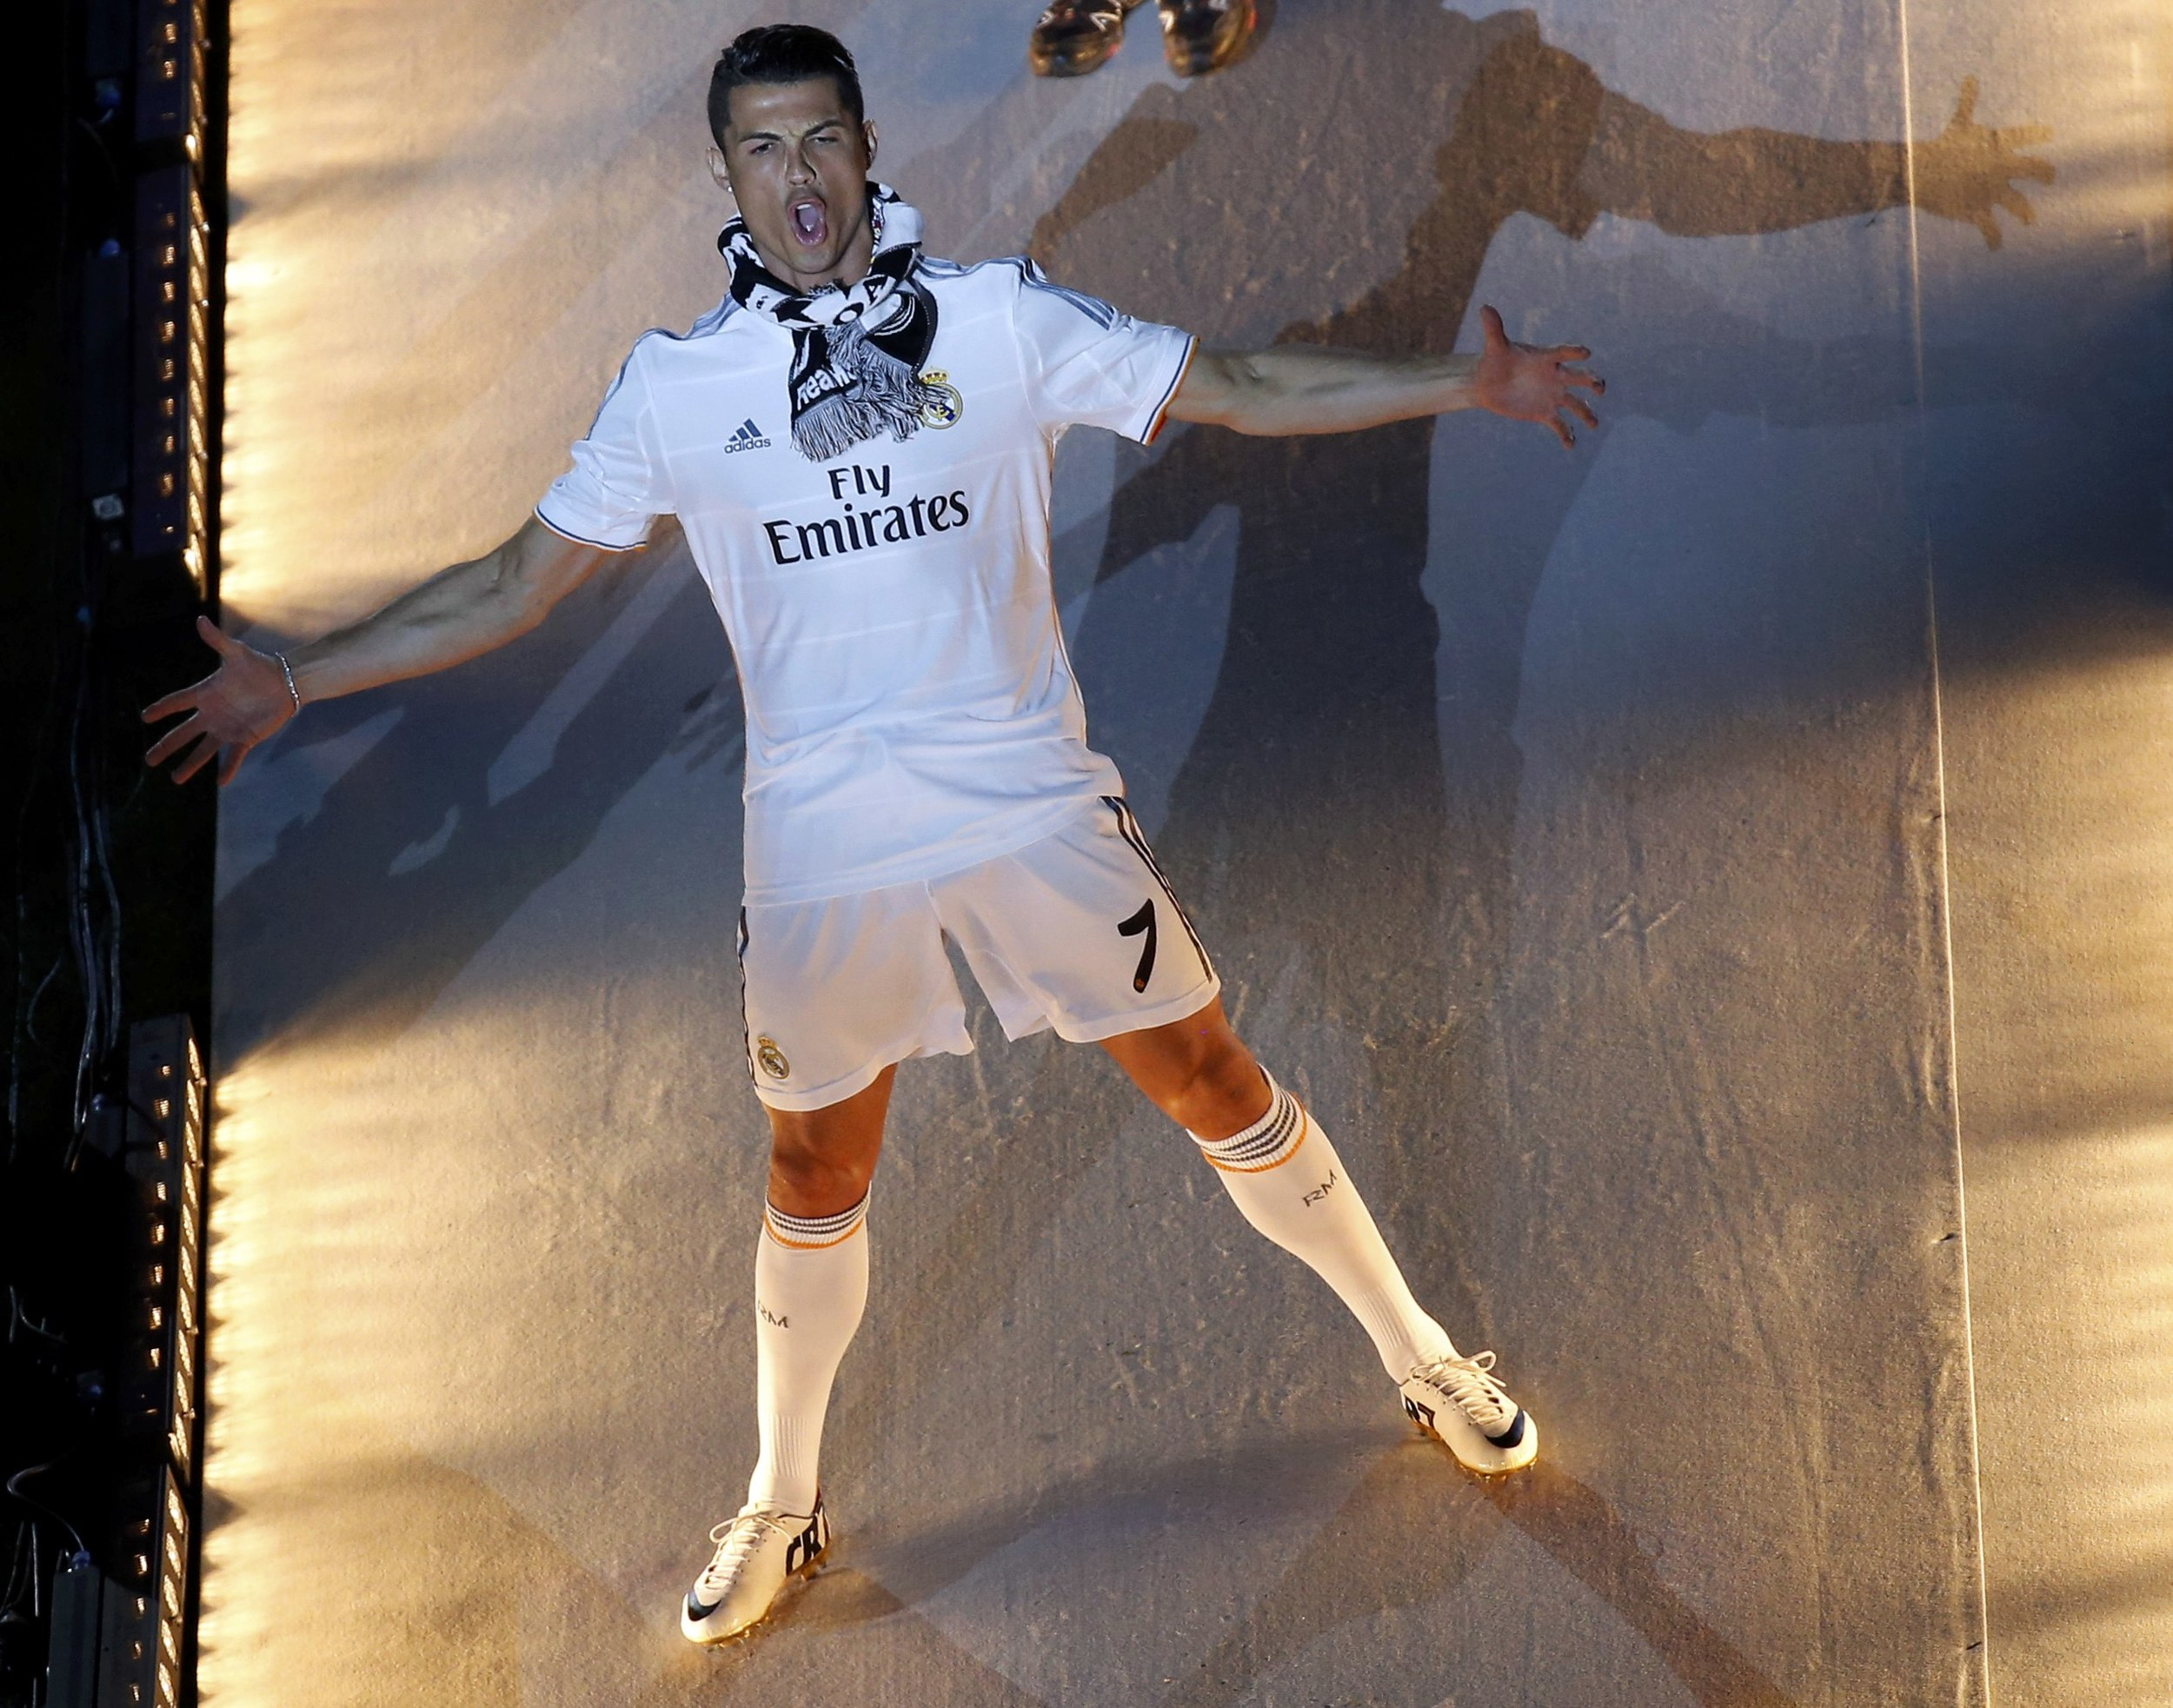 Real Madrid's Cristiano Ronaldo reacts a he arrives at Santiago Bernabeu stadium during a victory ceremony in Madrid after their 2014 Champions League victory against neighbours Atletico Madrid. Ronaldo has been labelled as arrogant by many but his individual and team awards back his egotistical remarks. Image supplied by Action Images /Paul Hanna